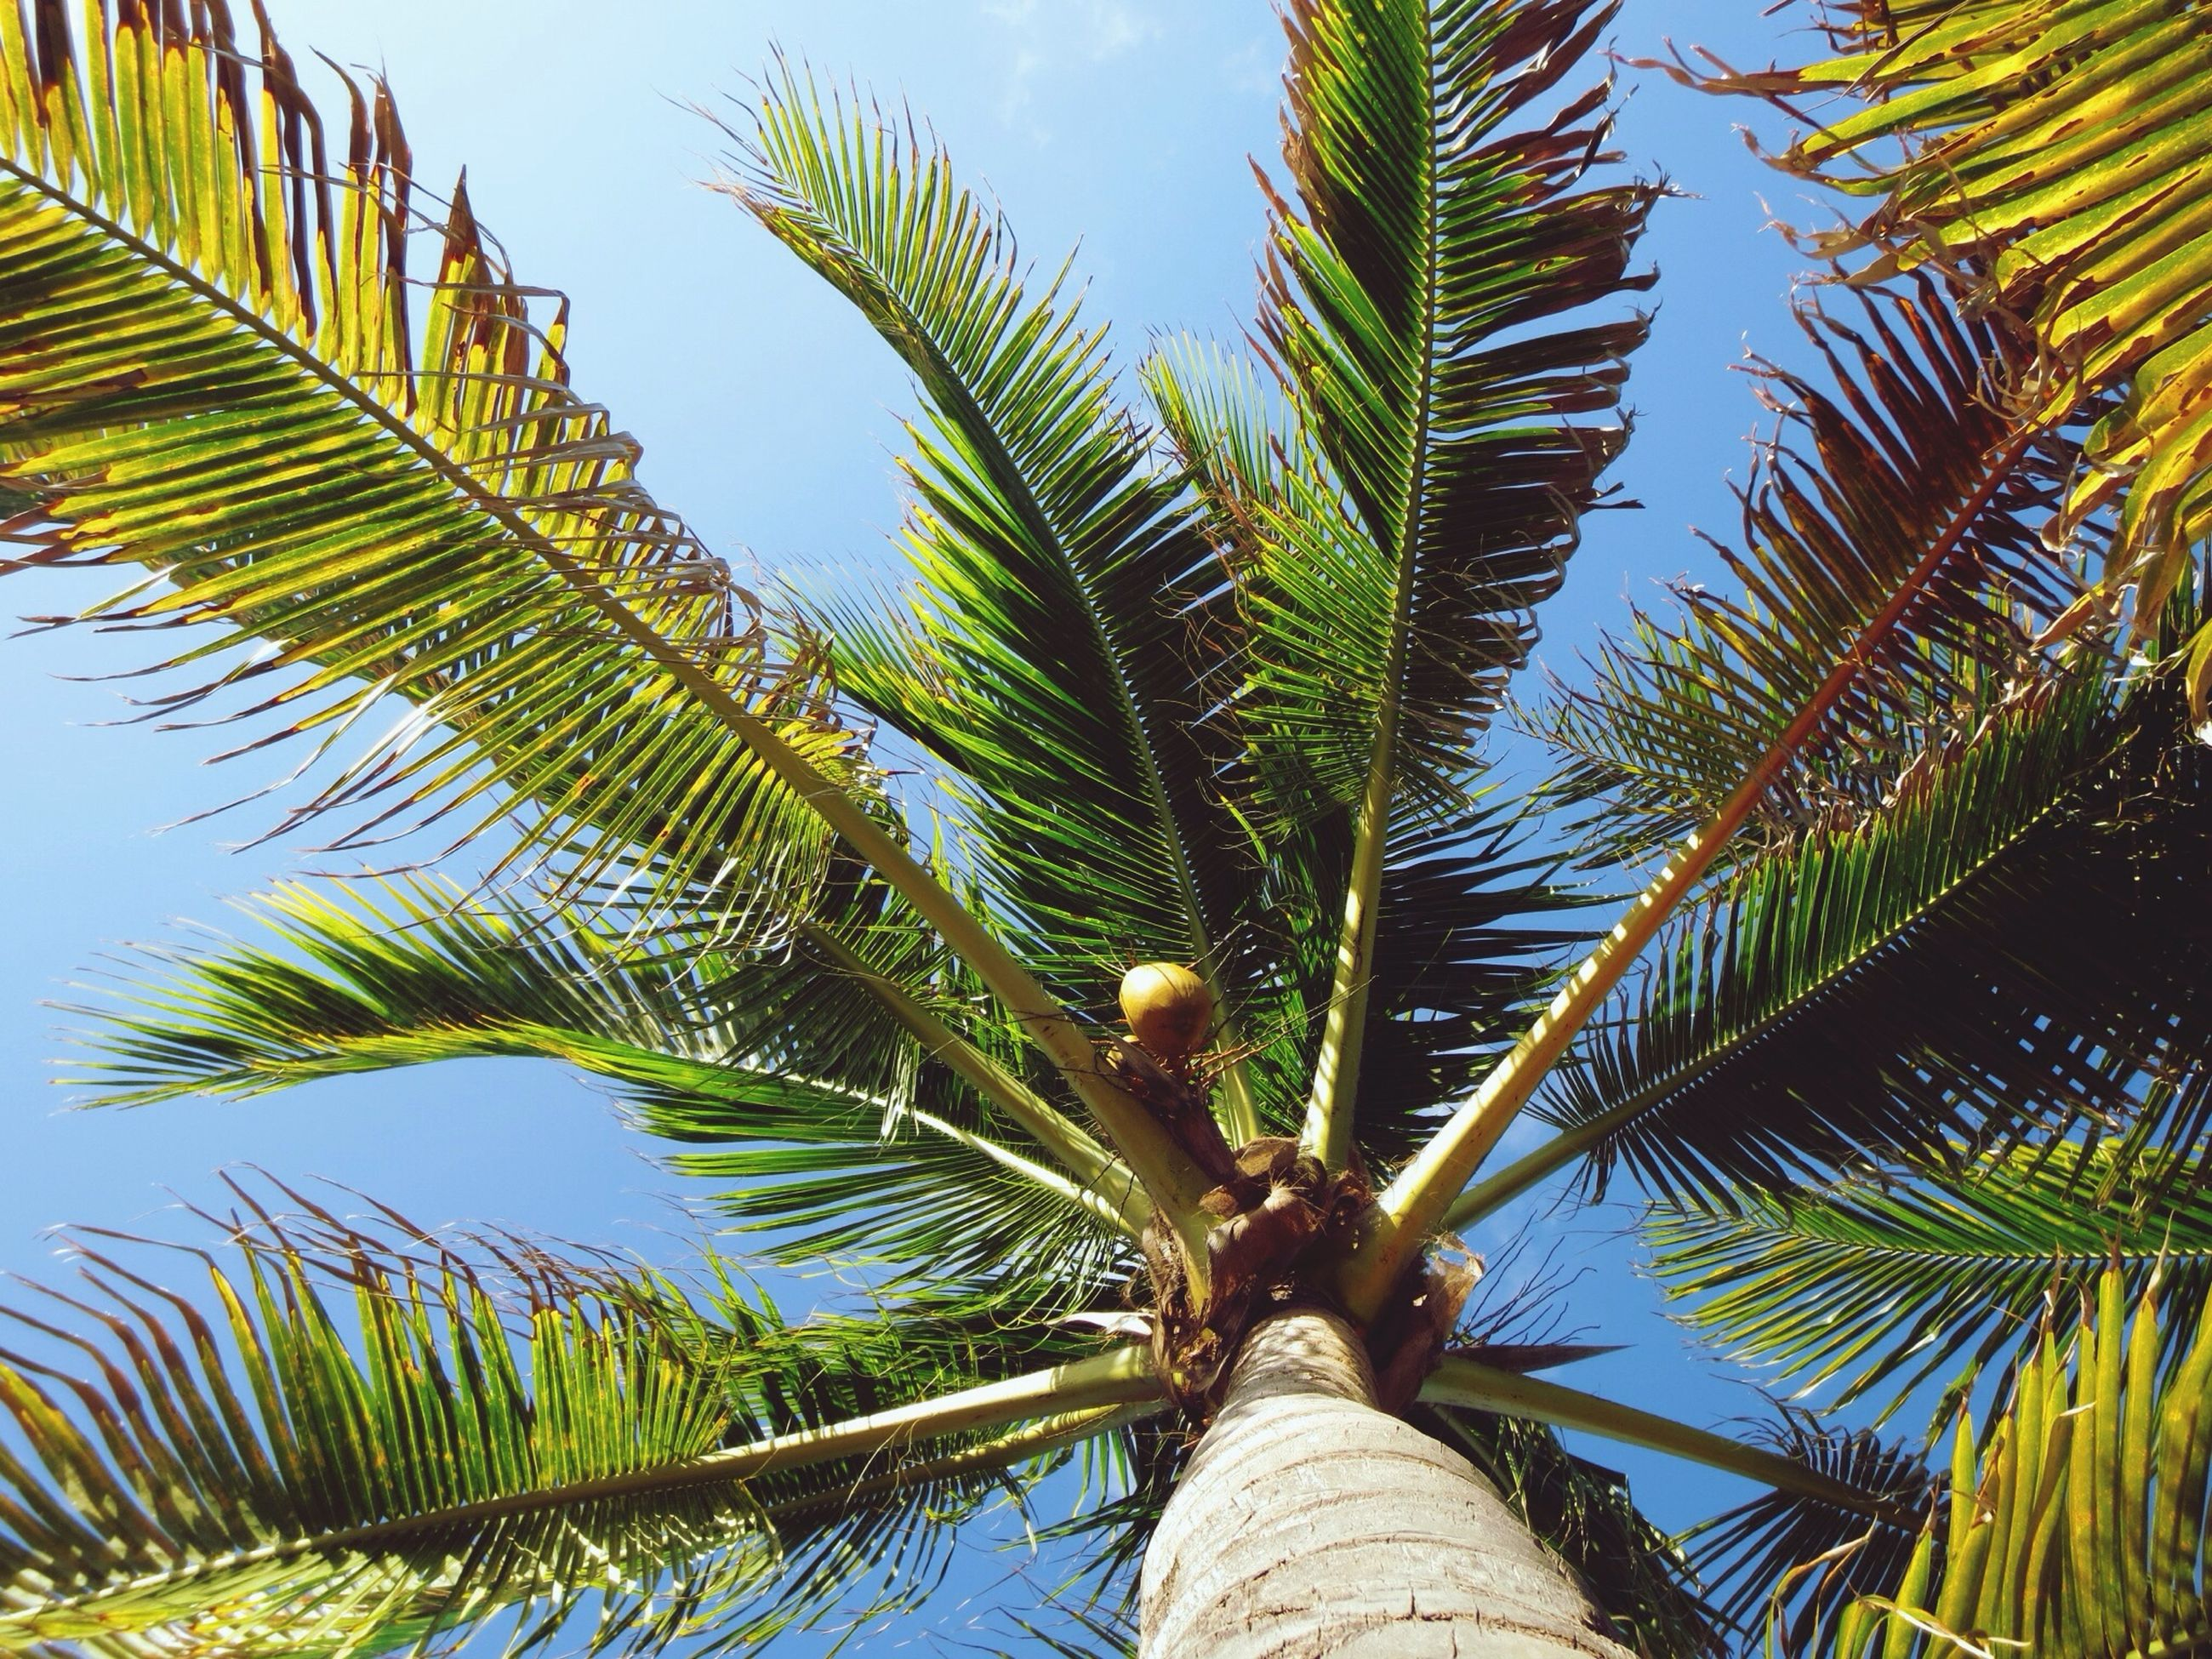 palm tree, low angle view, tree, growth, palm leaf, leaf, green color, branch, nature, coconut palm tree, sky, tropical tree, clear sky, tree trunk, tranquility, day, tropical climate, beauty in nature, sunlight, outdoors